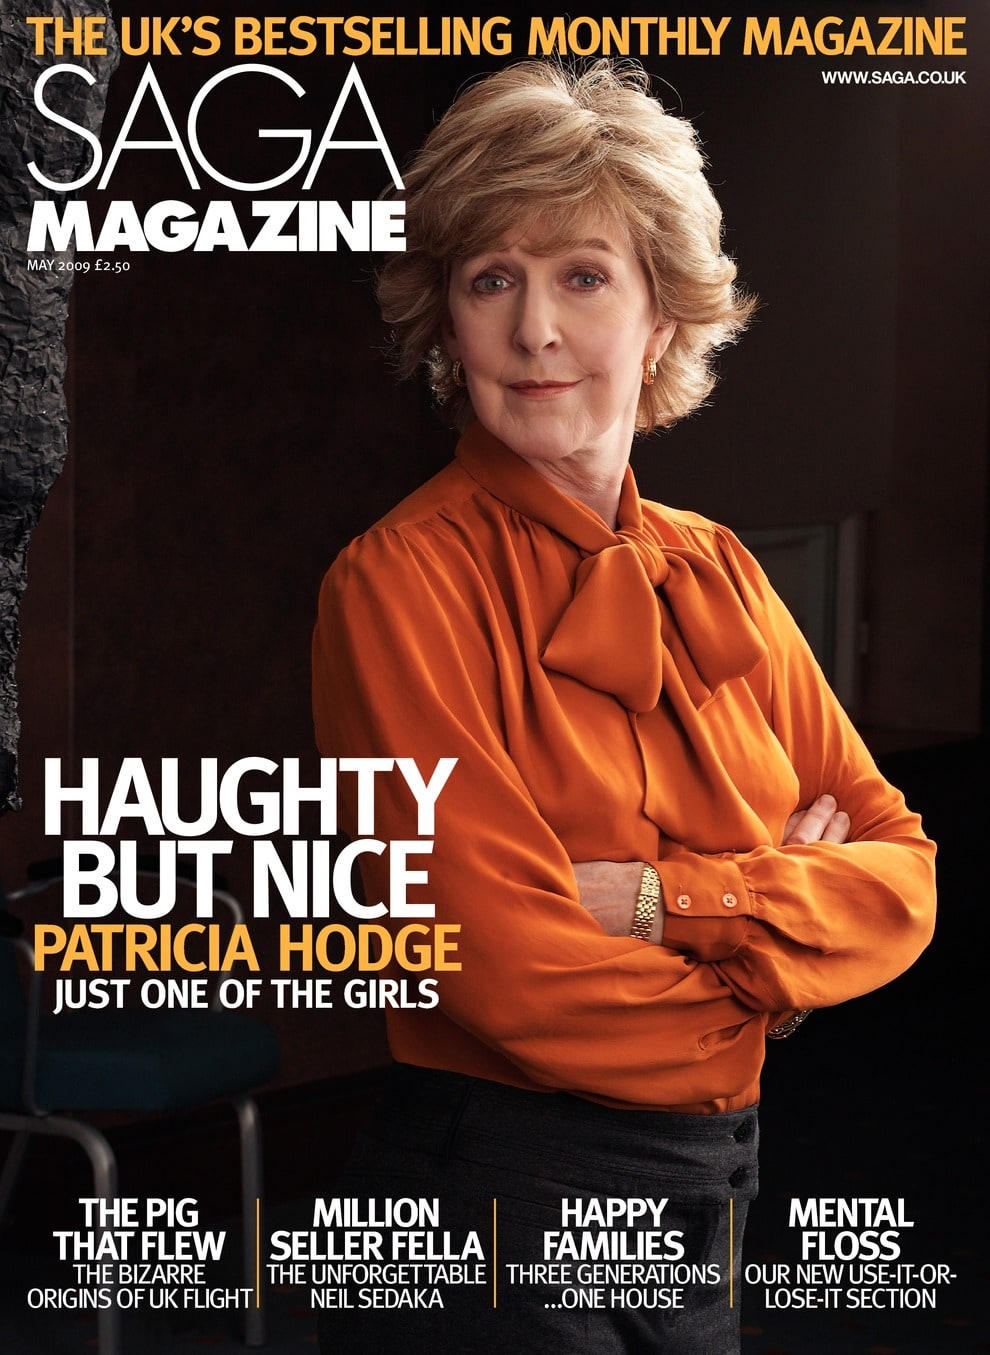 patricia hodge peter douglas owen